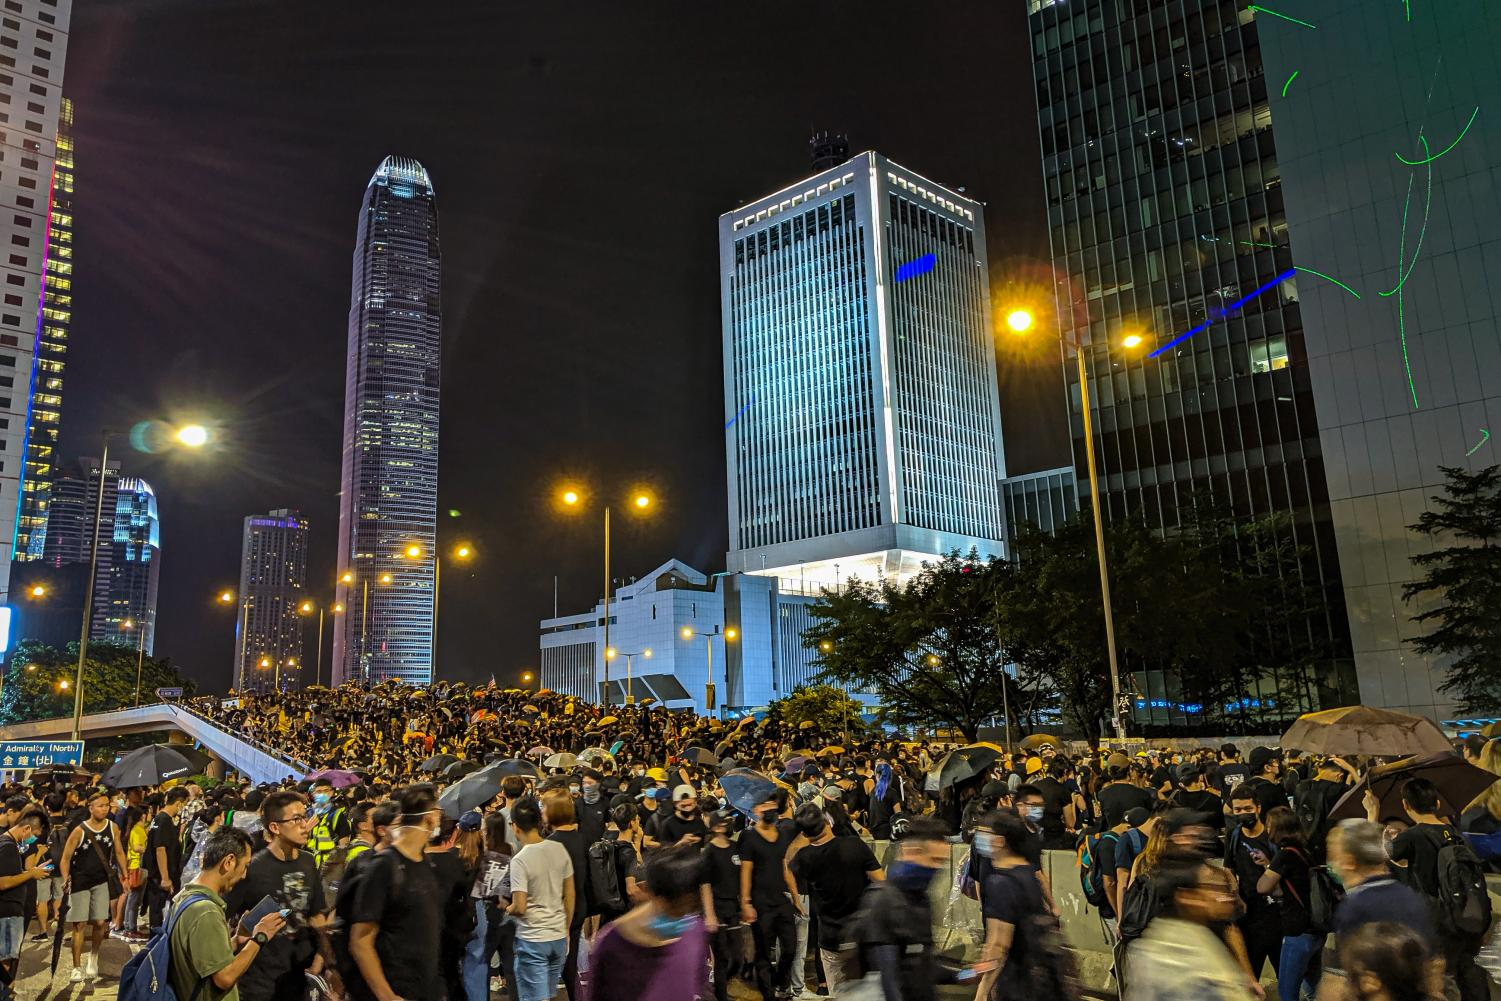 Labeled for reuse via https://commons.wikimedia.org/wiki/File:Hong_Kong_protests_-_IMG_20190818_204524.jpg under the Creative Commons License